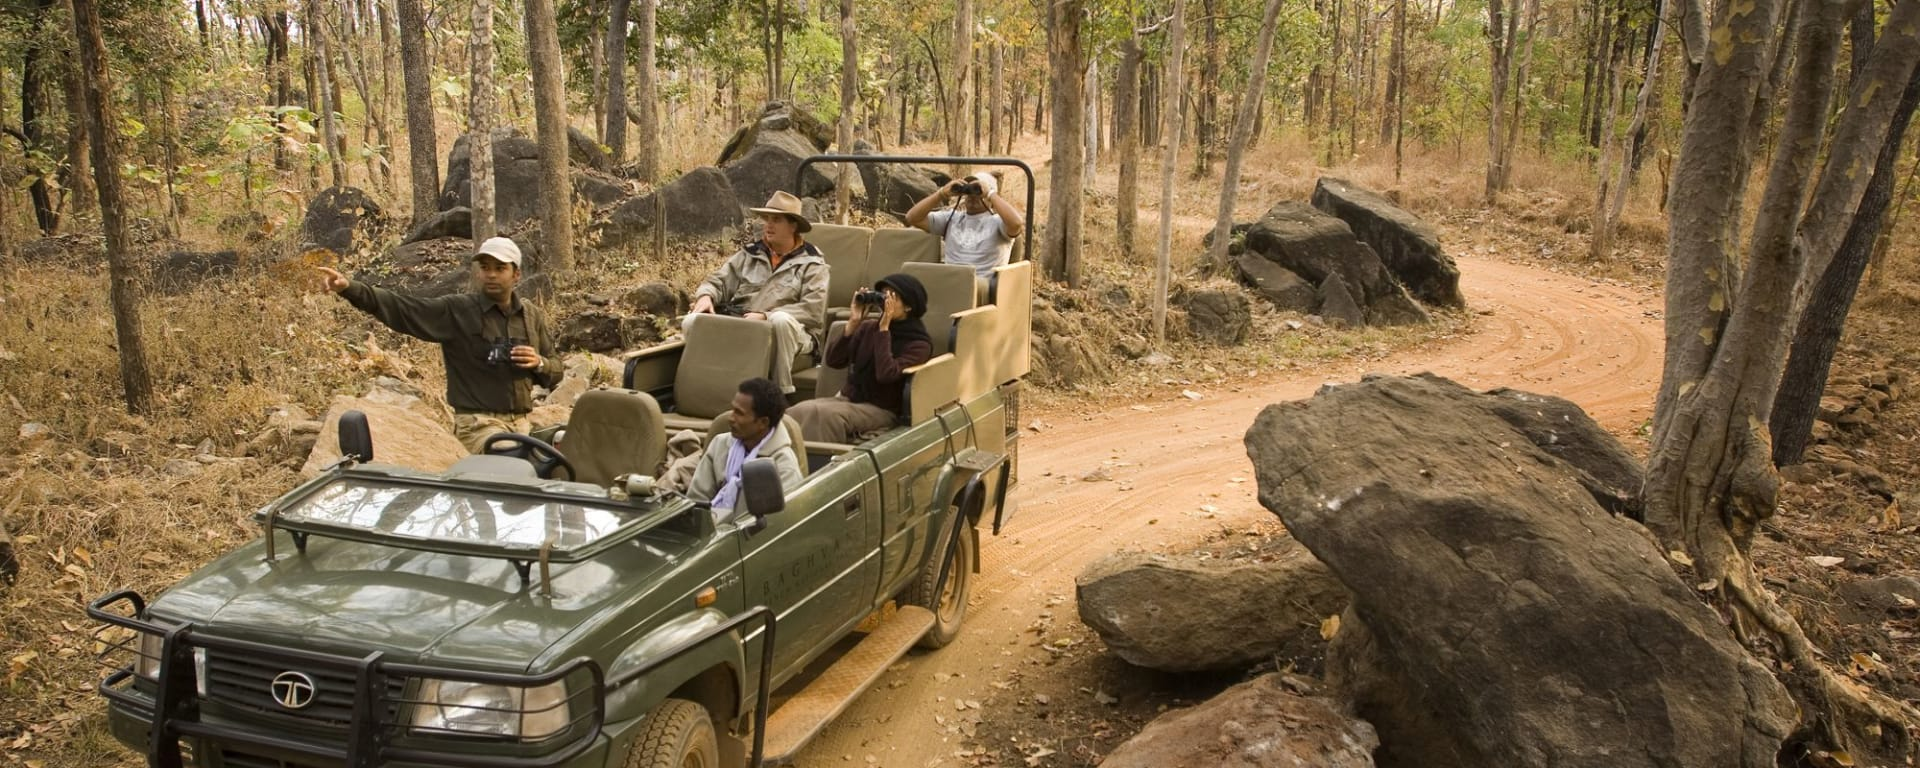 Baghvan Lodge à Pench: Safari Jeep 4x4